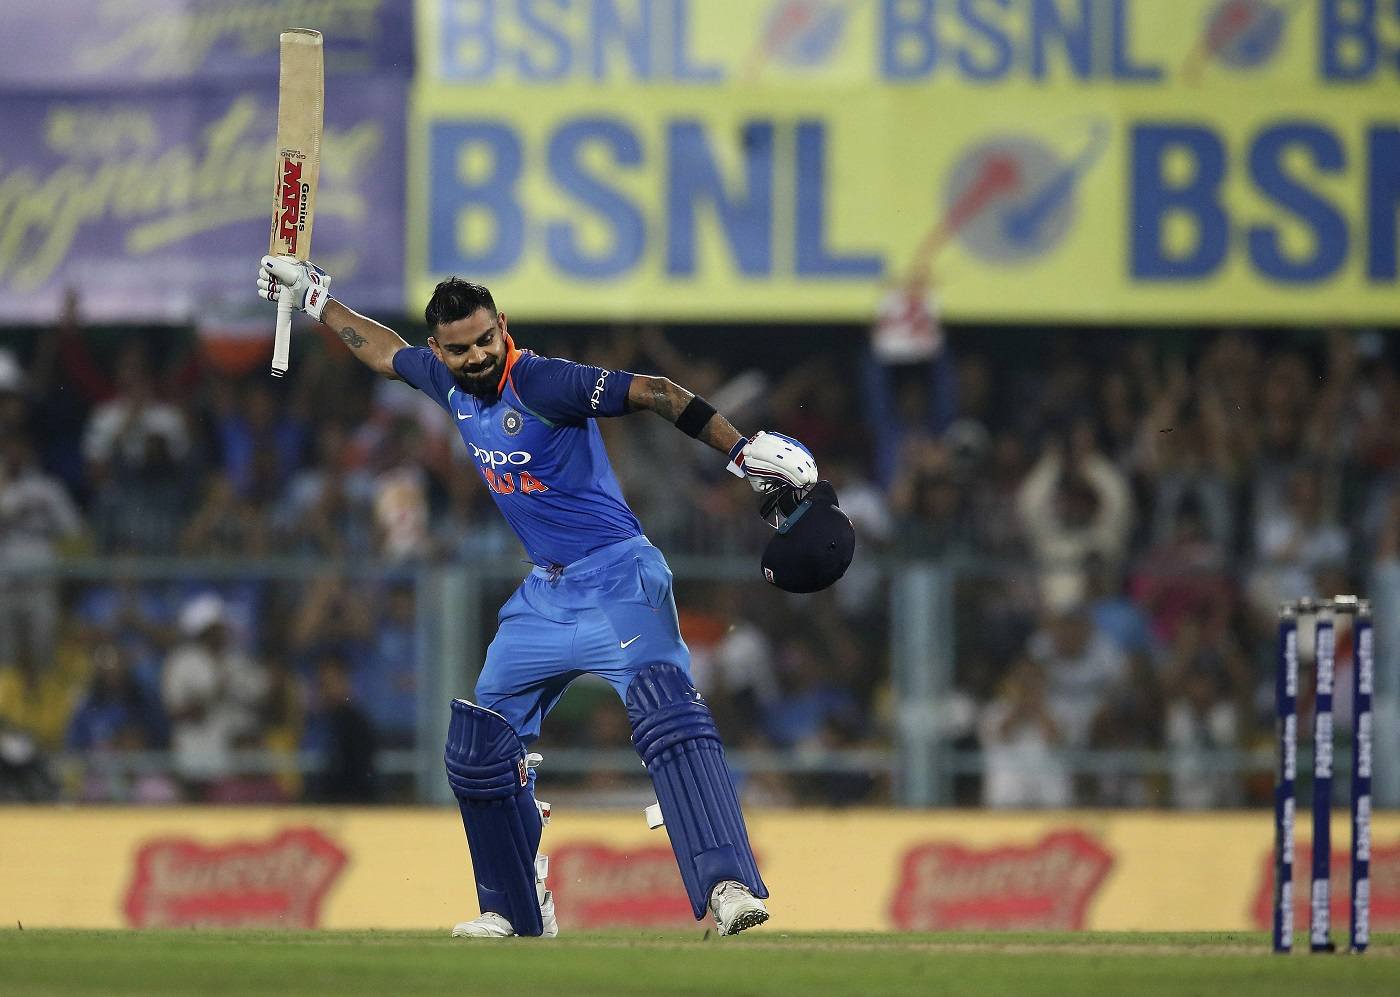 India Beat West Indies By 8 Wickets With 47 Balls Remaining